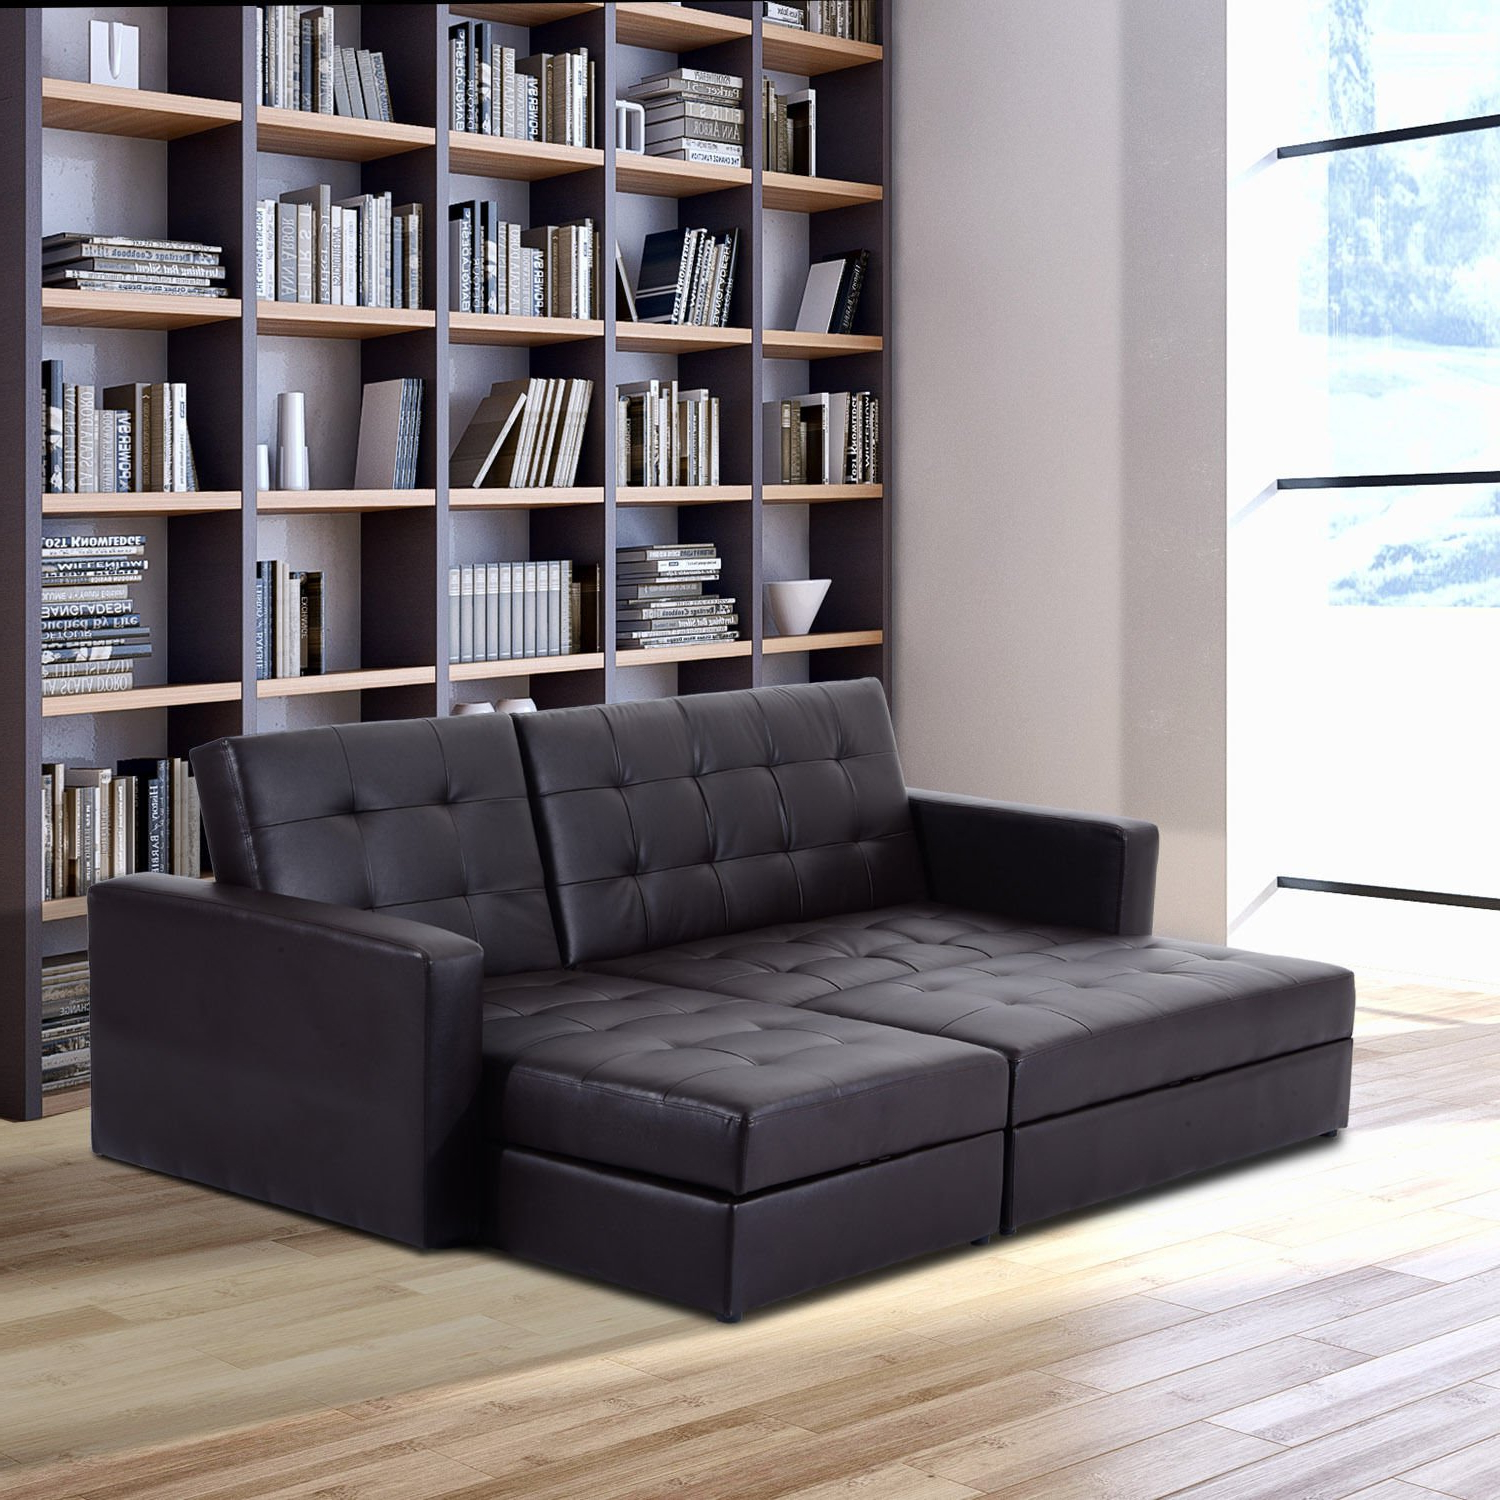 Most Popular Hartford Storage Sectional Futon Sofas Within Storage+sleeper+couch+sofa+bed – Simply Style (View 17 of 20)